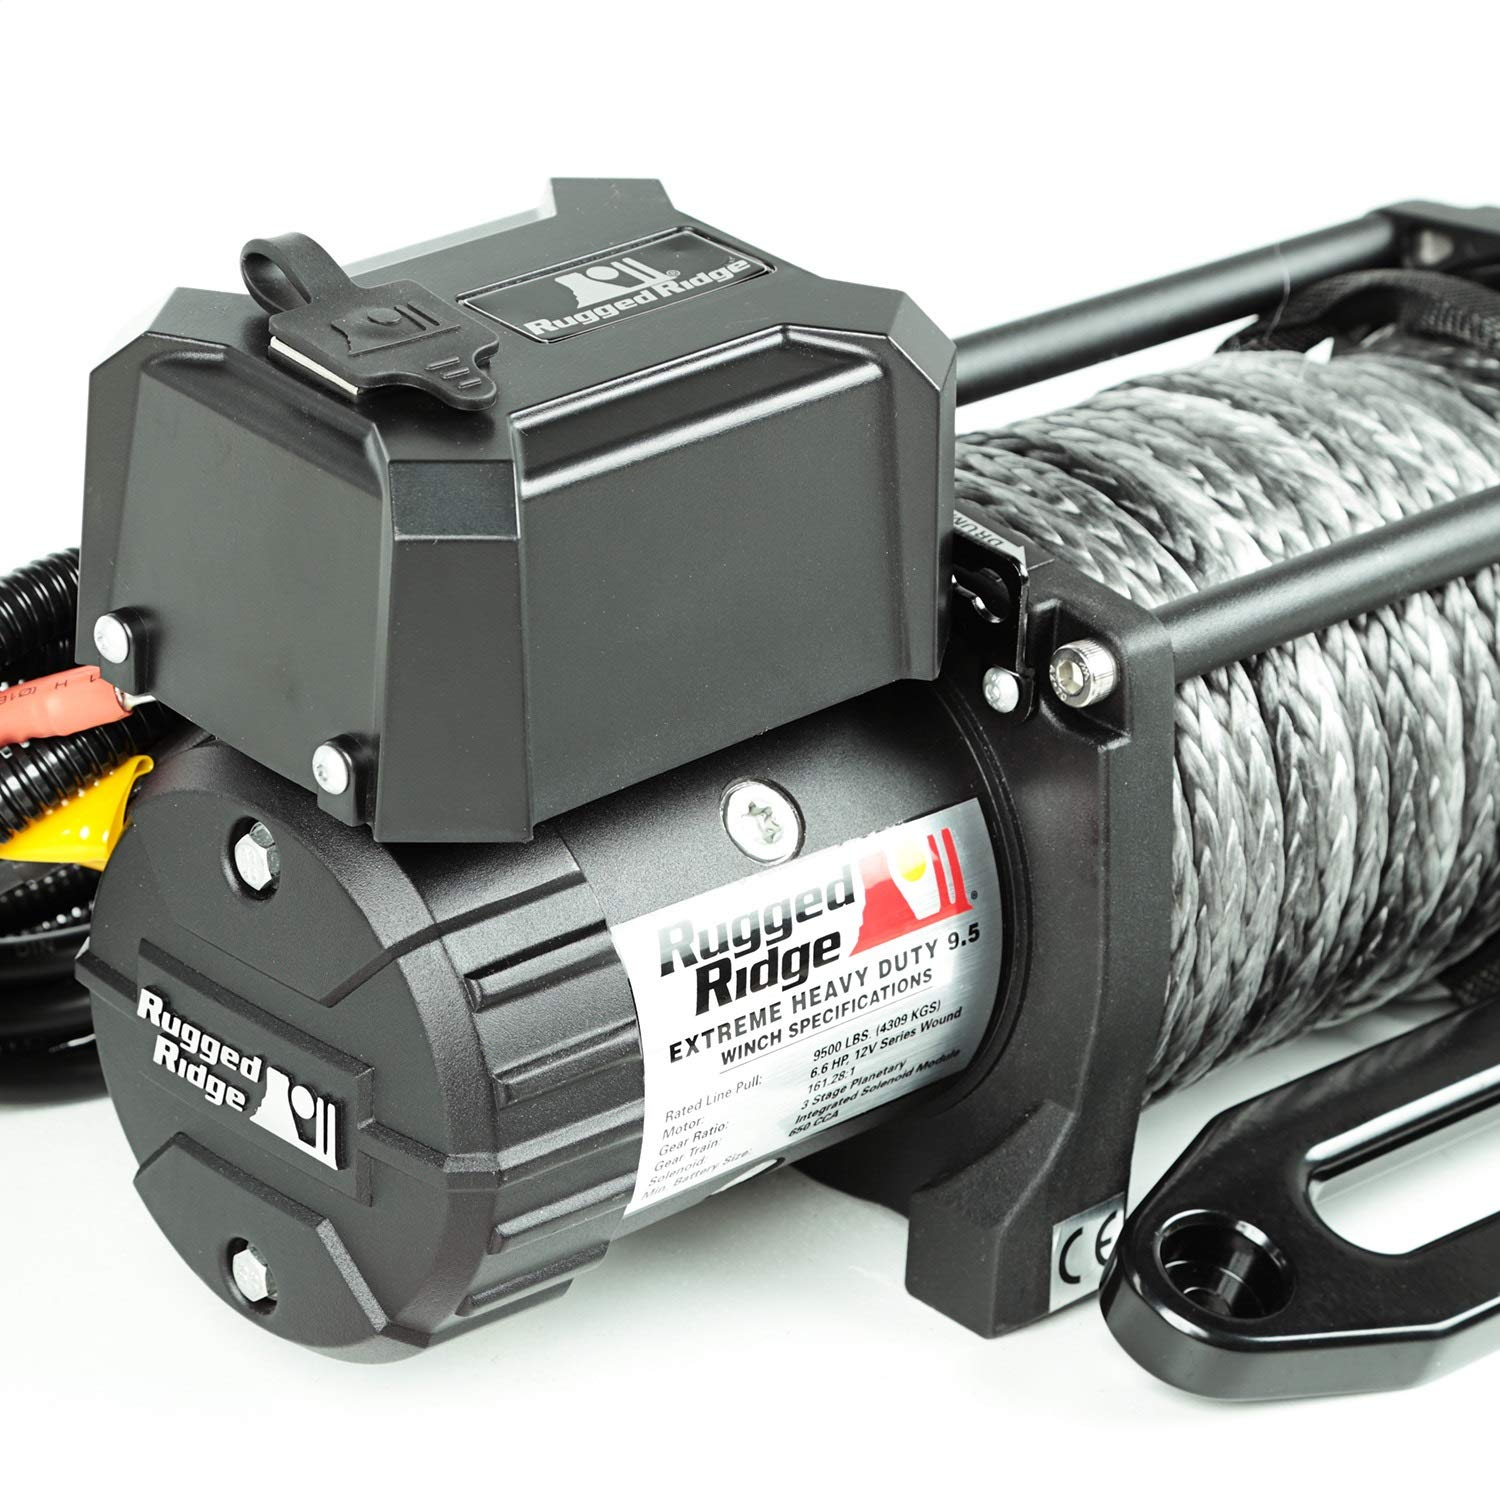 9500 LBS, Cable, Waterproof Rugged Ridge 15100.05 Nautic Winch